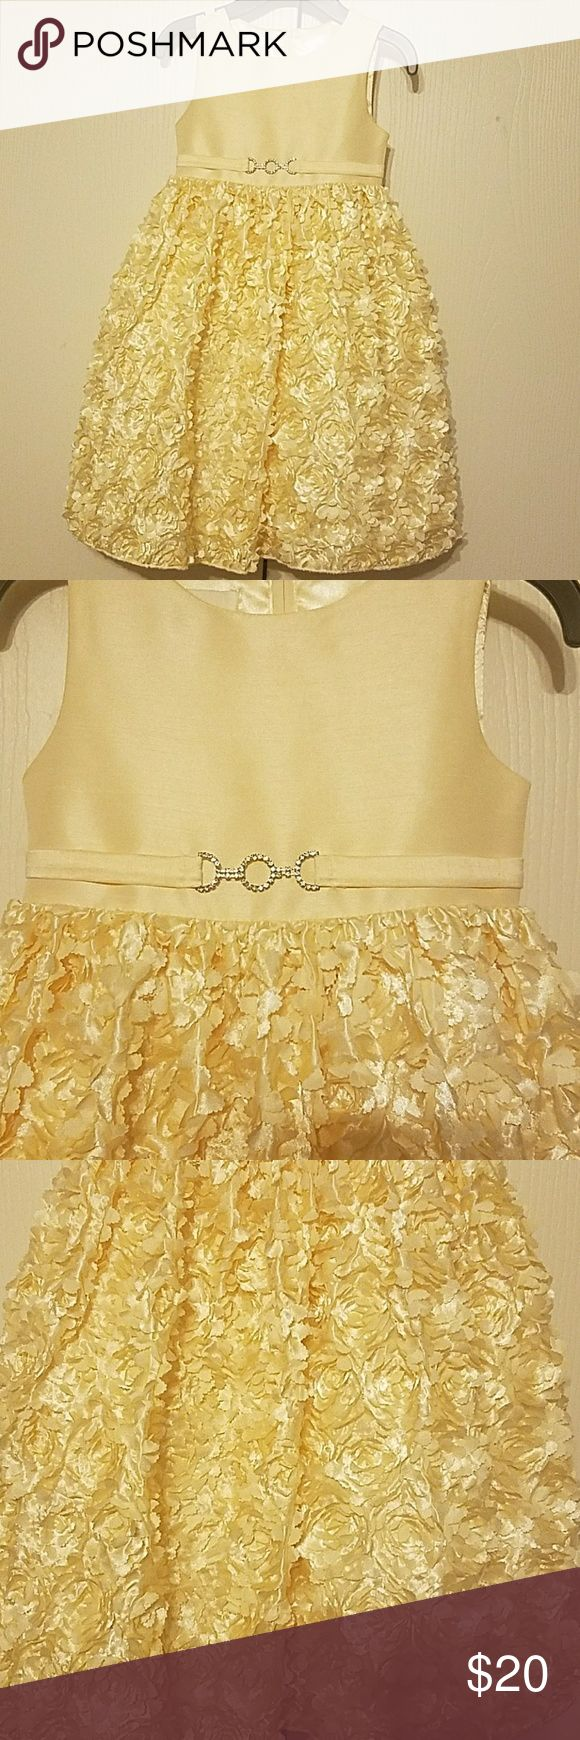 Girl's Formal Dress Yellow formal dress. Great for a flower girl dress or Easter Sunday dress. My daughter only wore it once for Easter Sunday. American Princess Dresses Formal